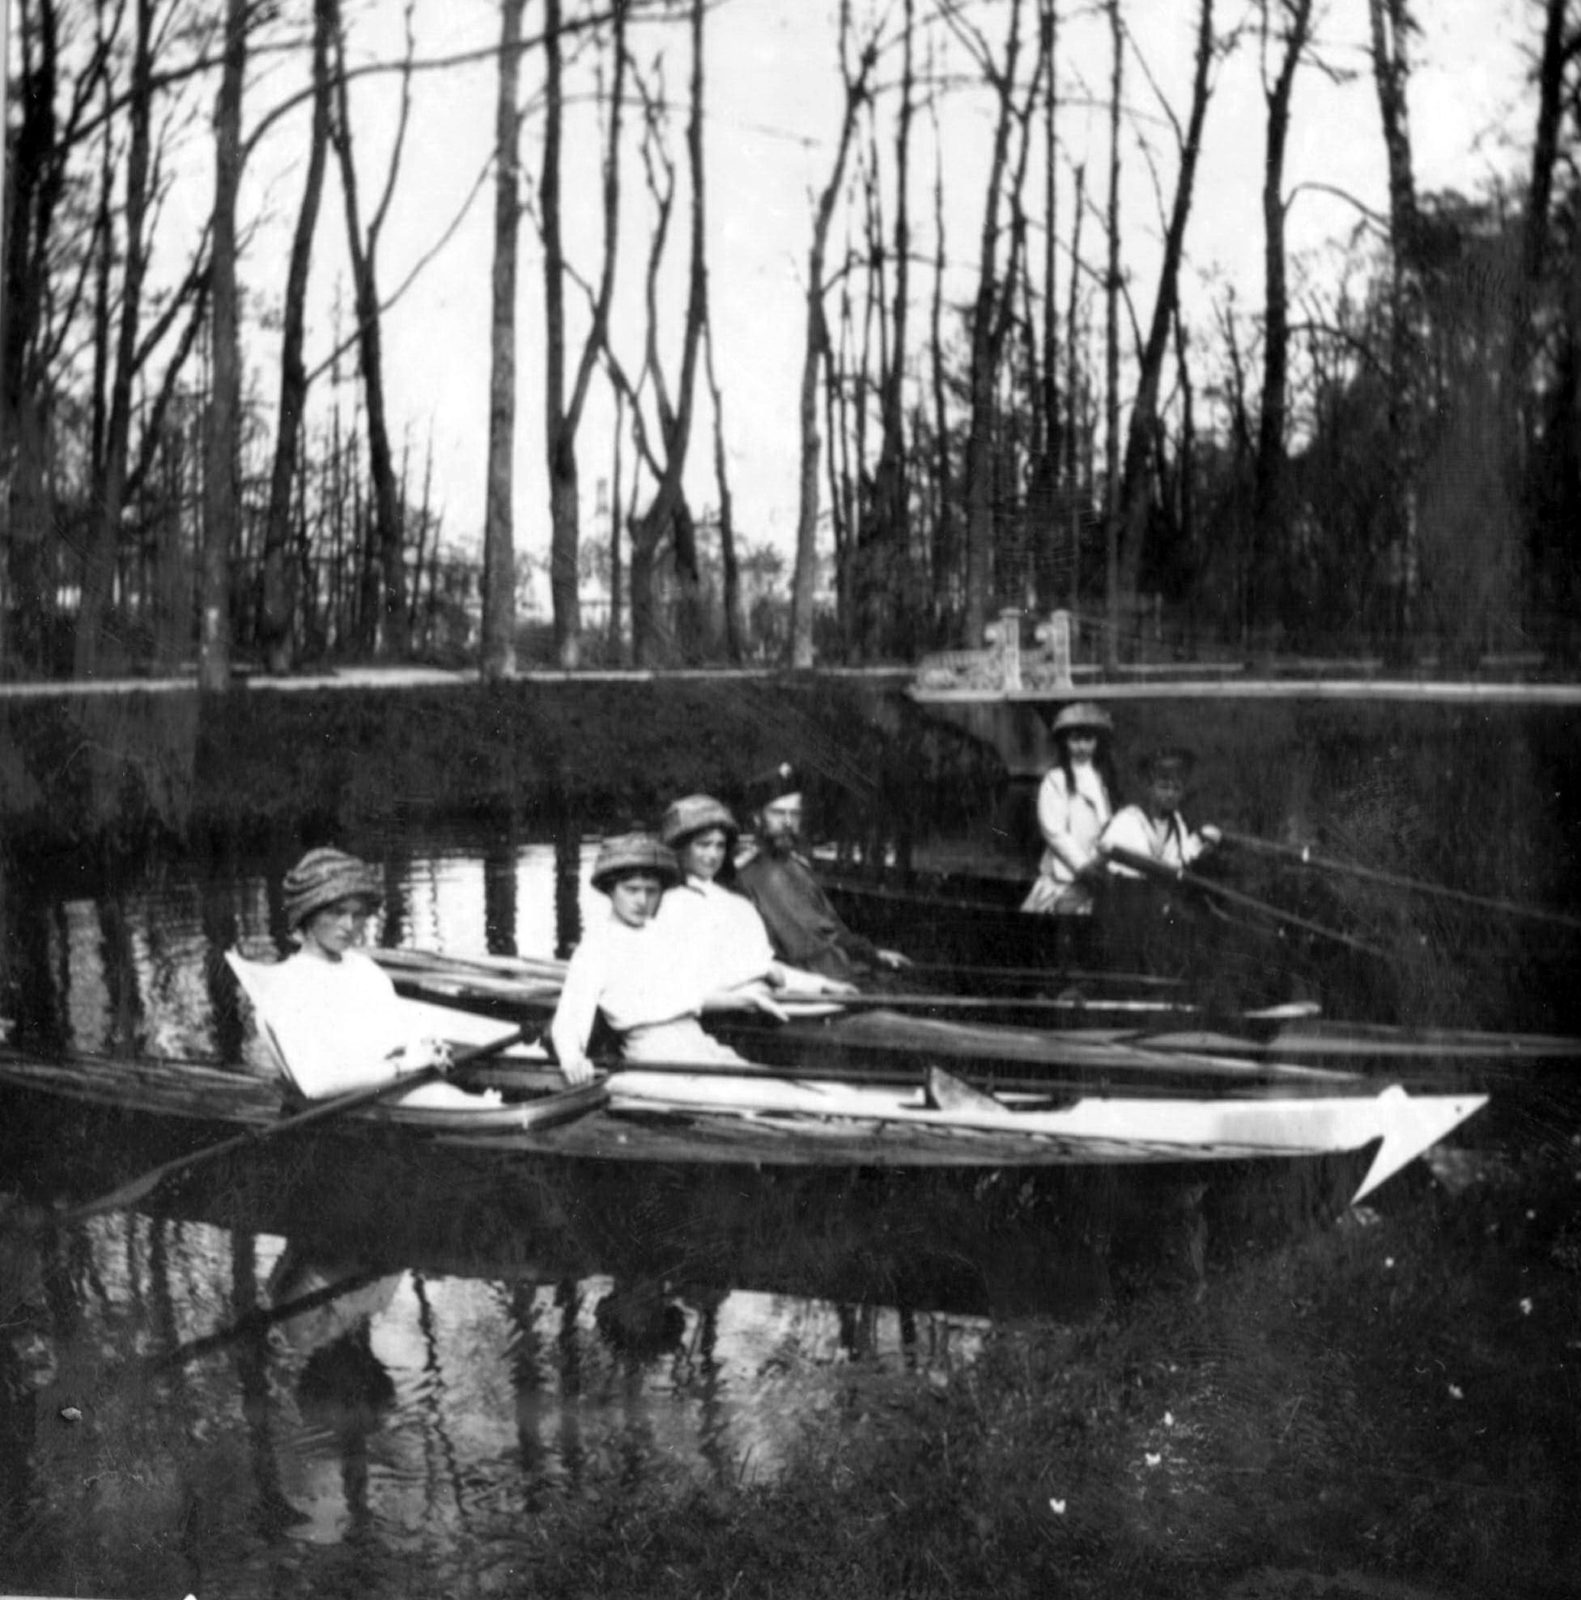 Emperor Nicholas II with his children. Canoeing on the canal of the Tsarskoe Selo Park.